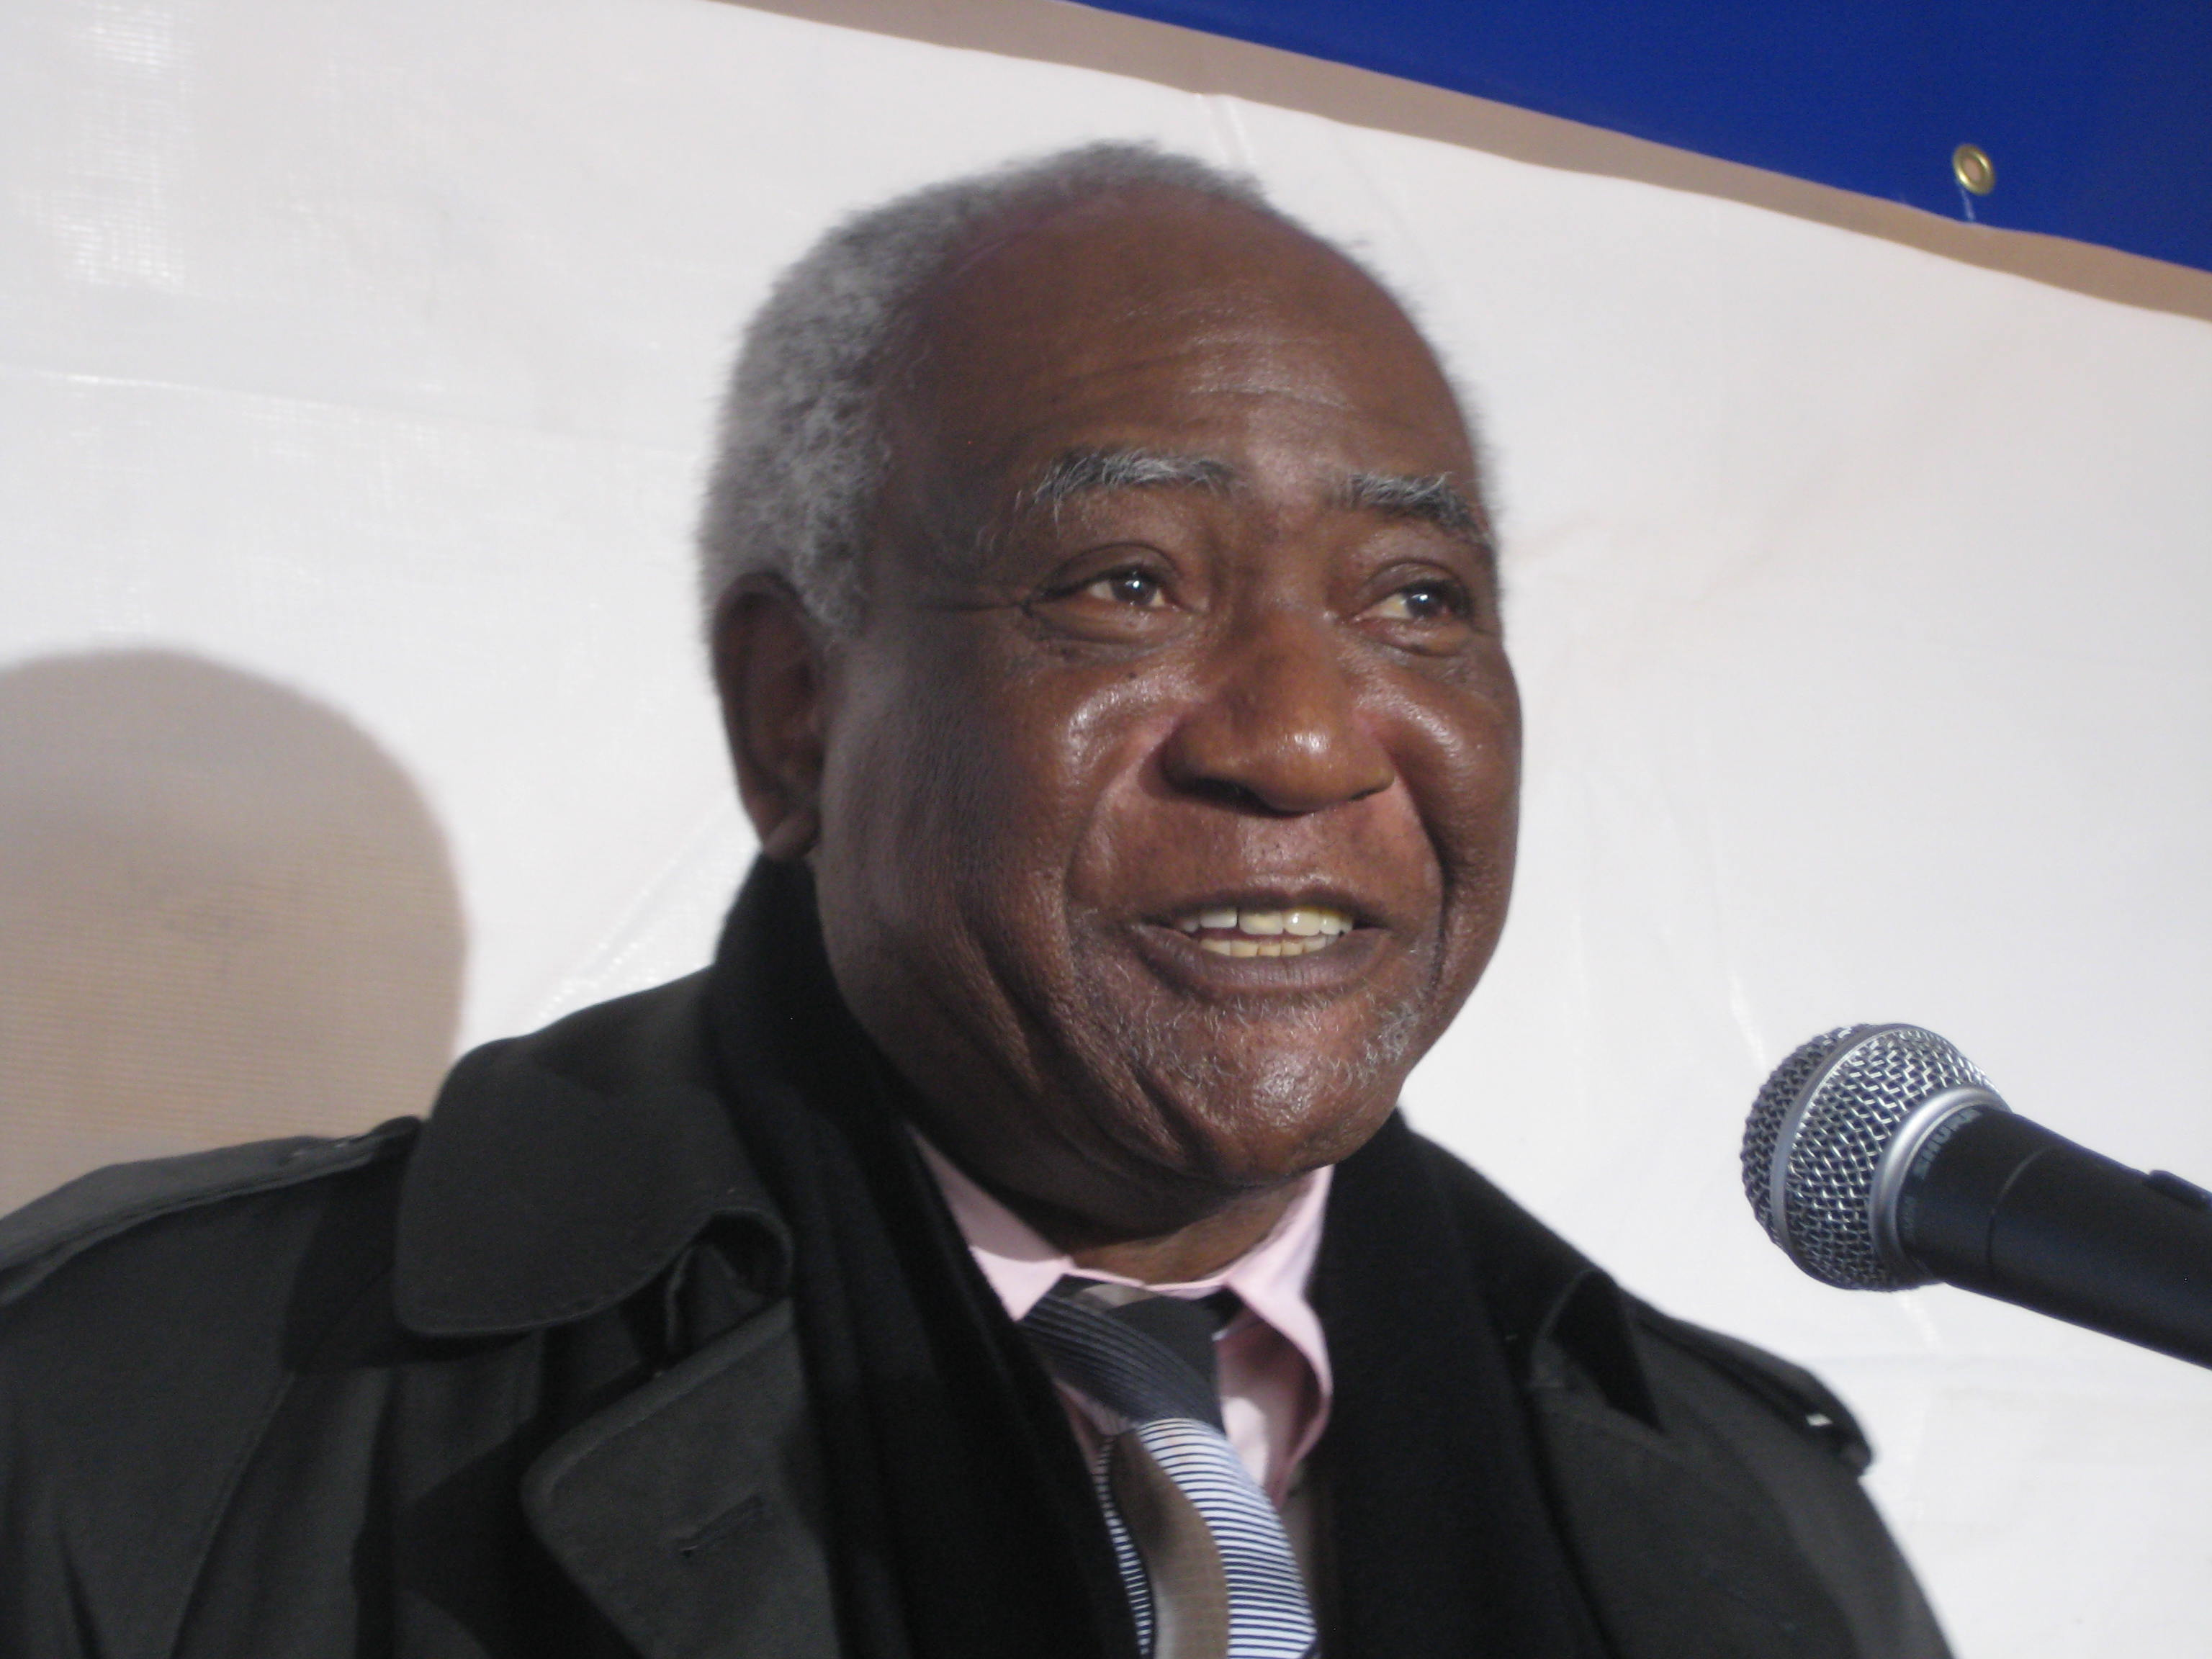 U.S. Rep. Danny Davis is a former Chicago alderman and Cook County commissioner. (WBEZ/Chip Mitchell)